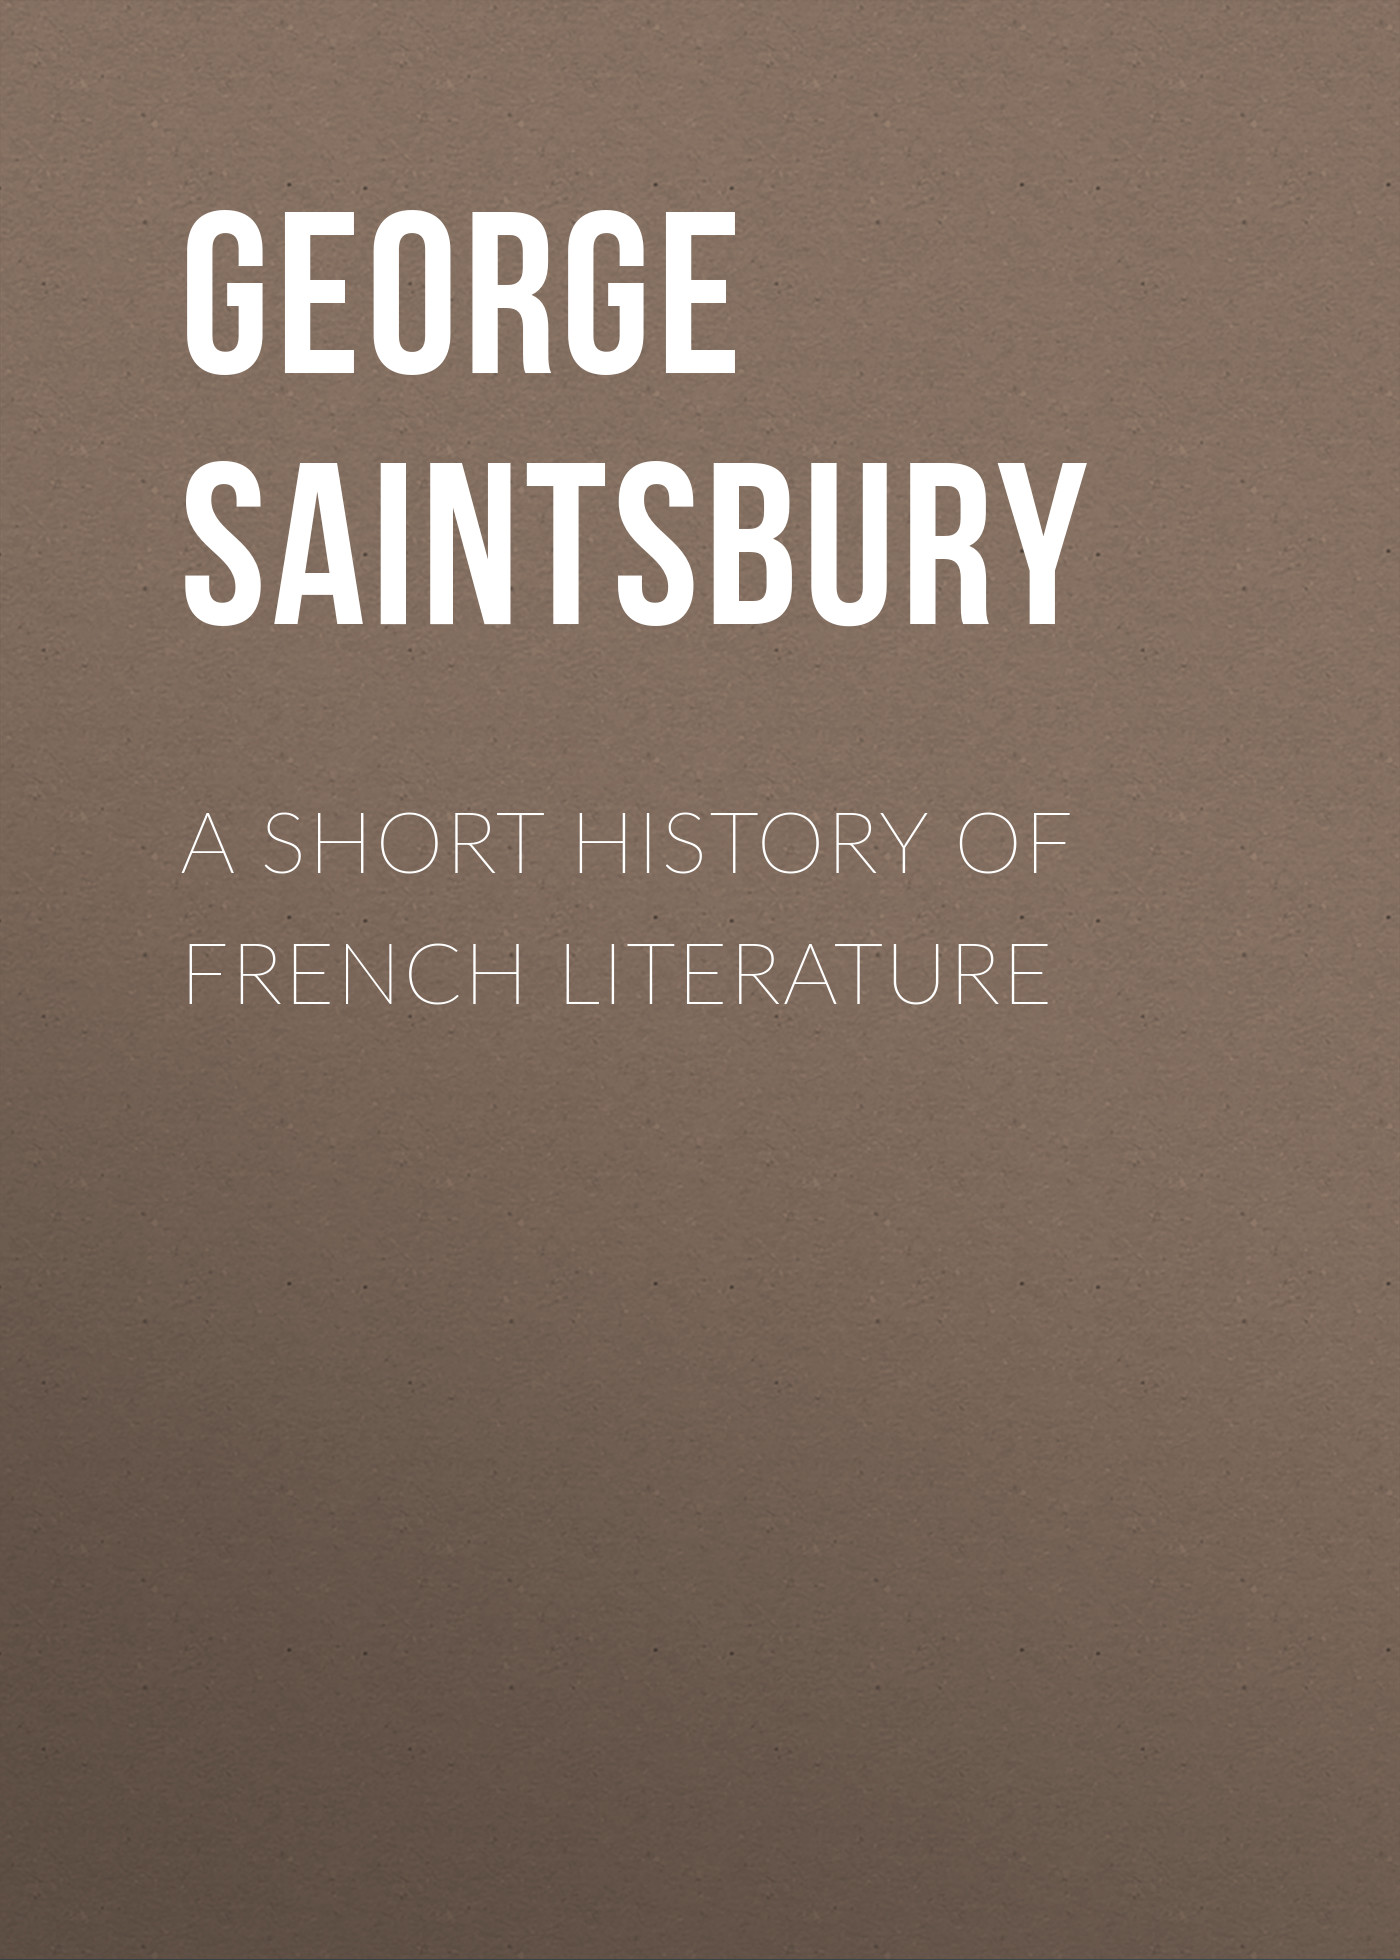 цена на Saintsbury George A Short History of French Literature